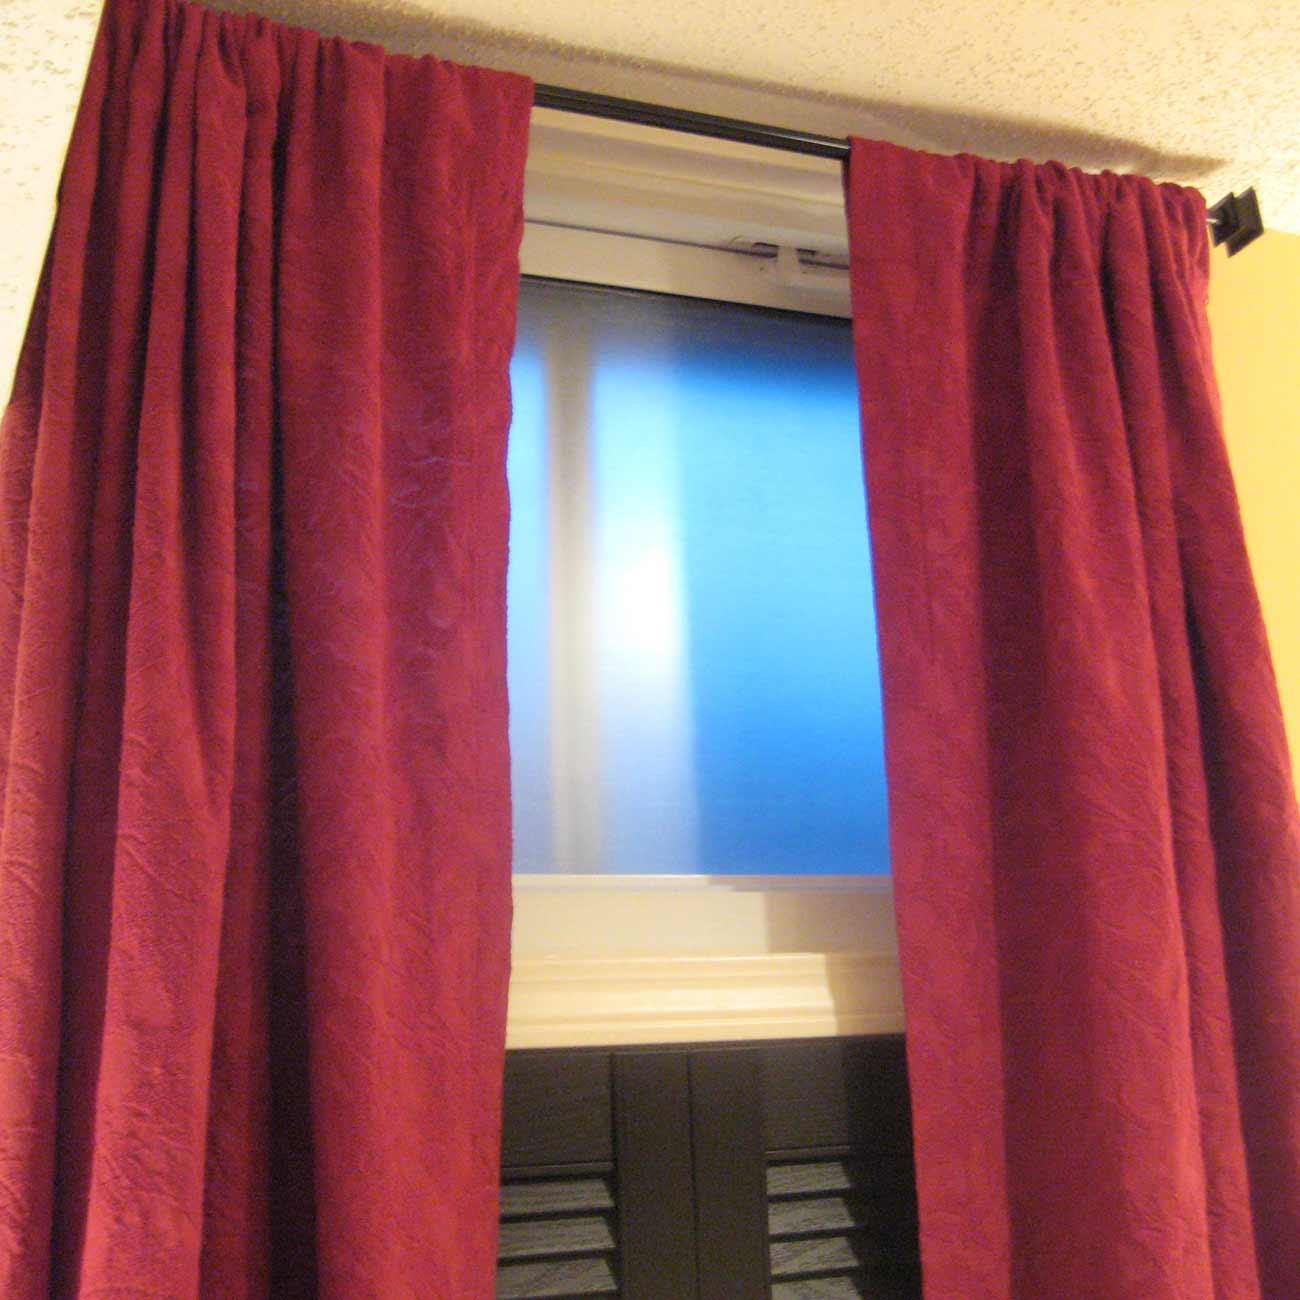 basement window curtains in rose red